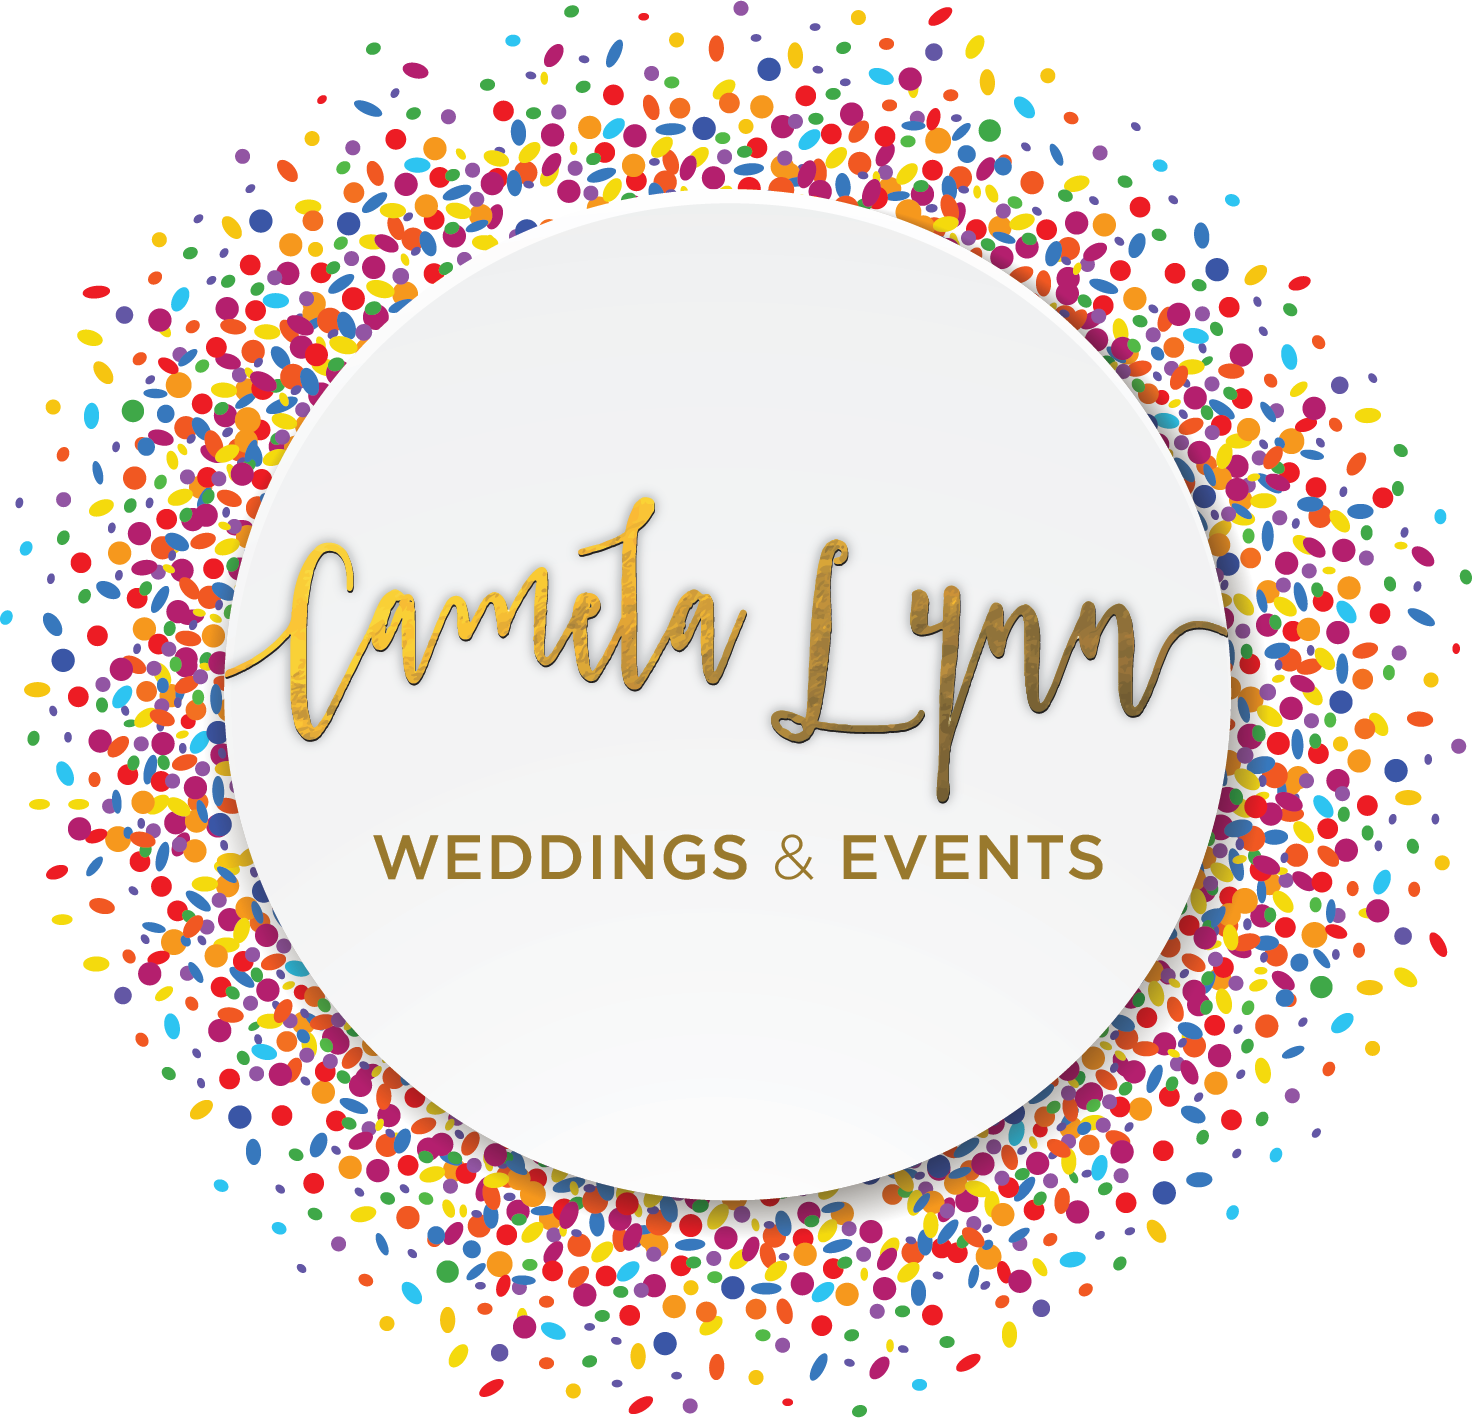 Camela Lynn Weddings & Events